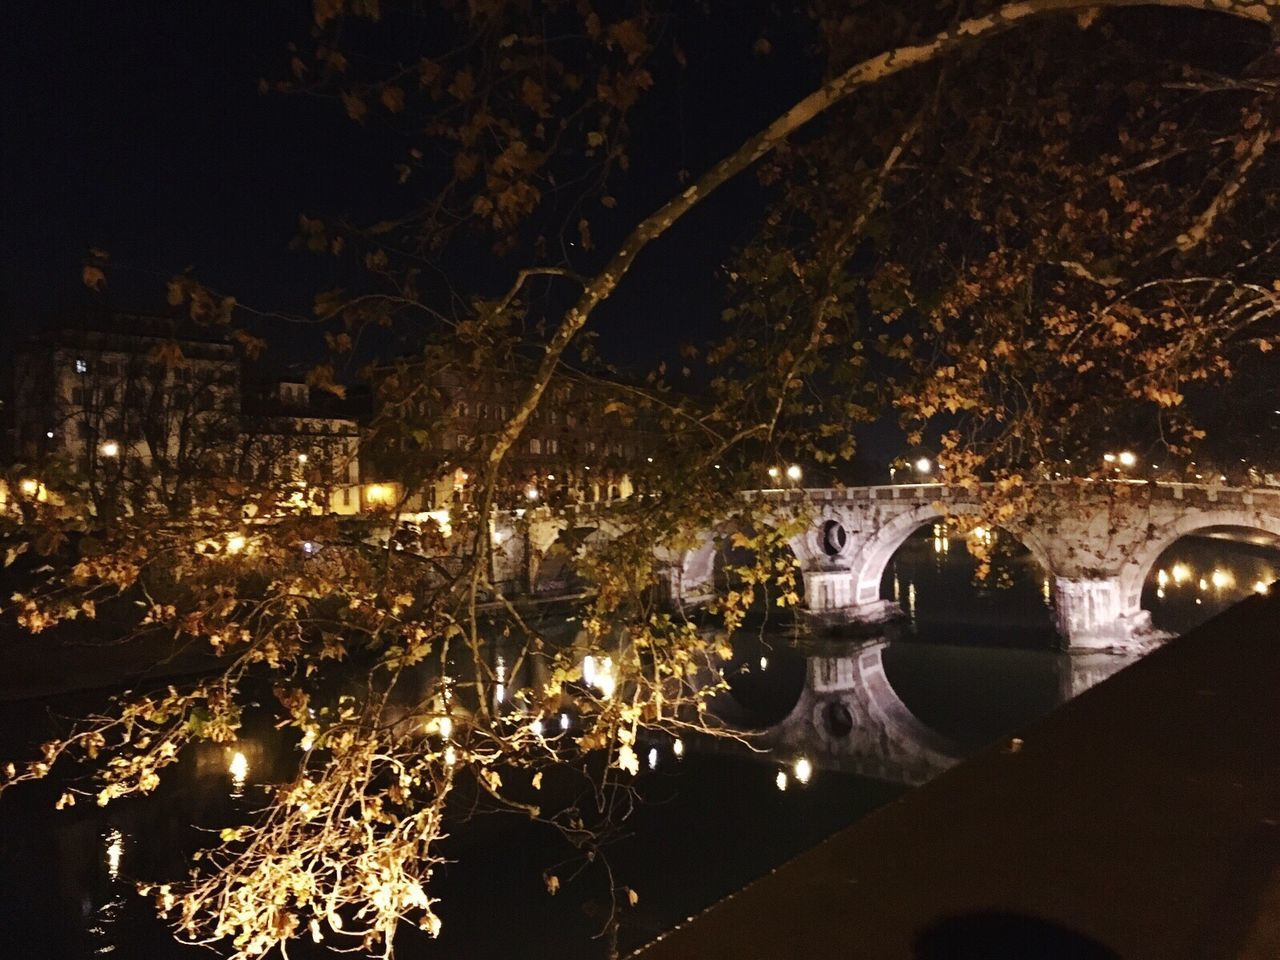 Roman Nights Soft Light Bridge Night Lights Experiencing Places Trees Pure Beauty ~the Atmosphere I love the most